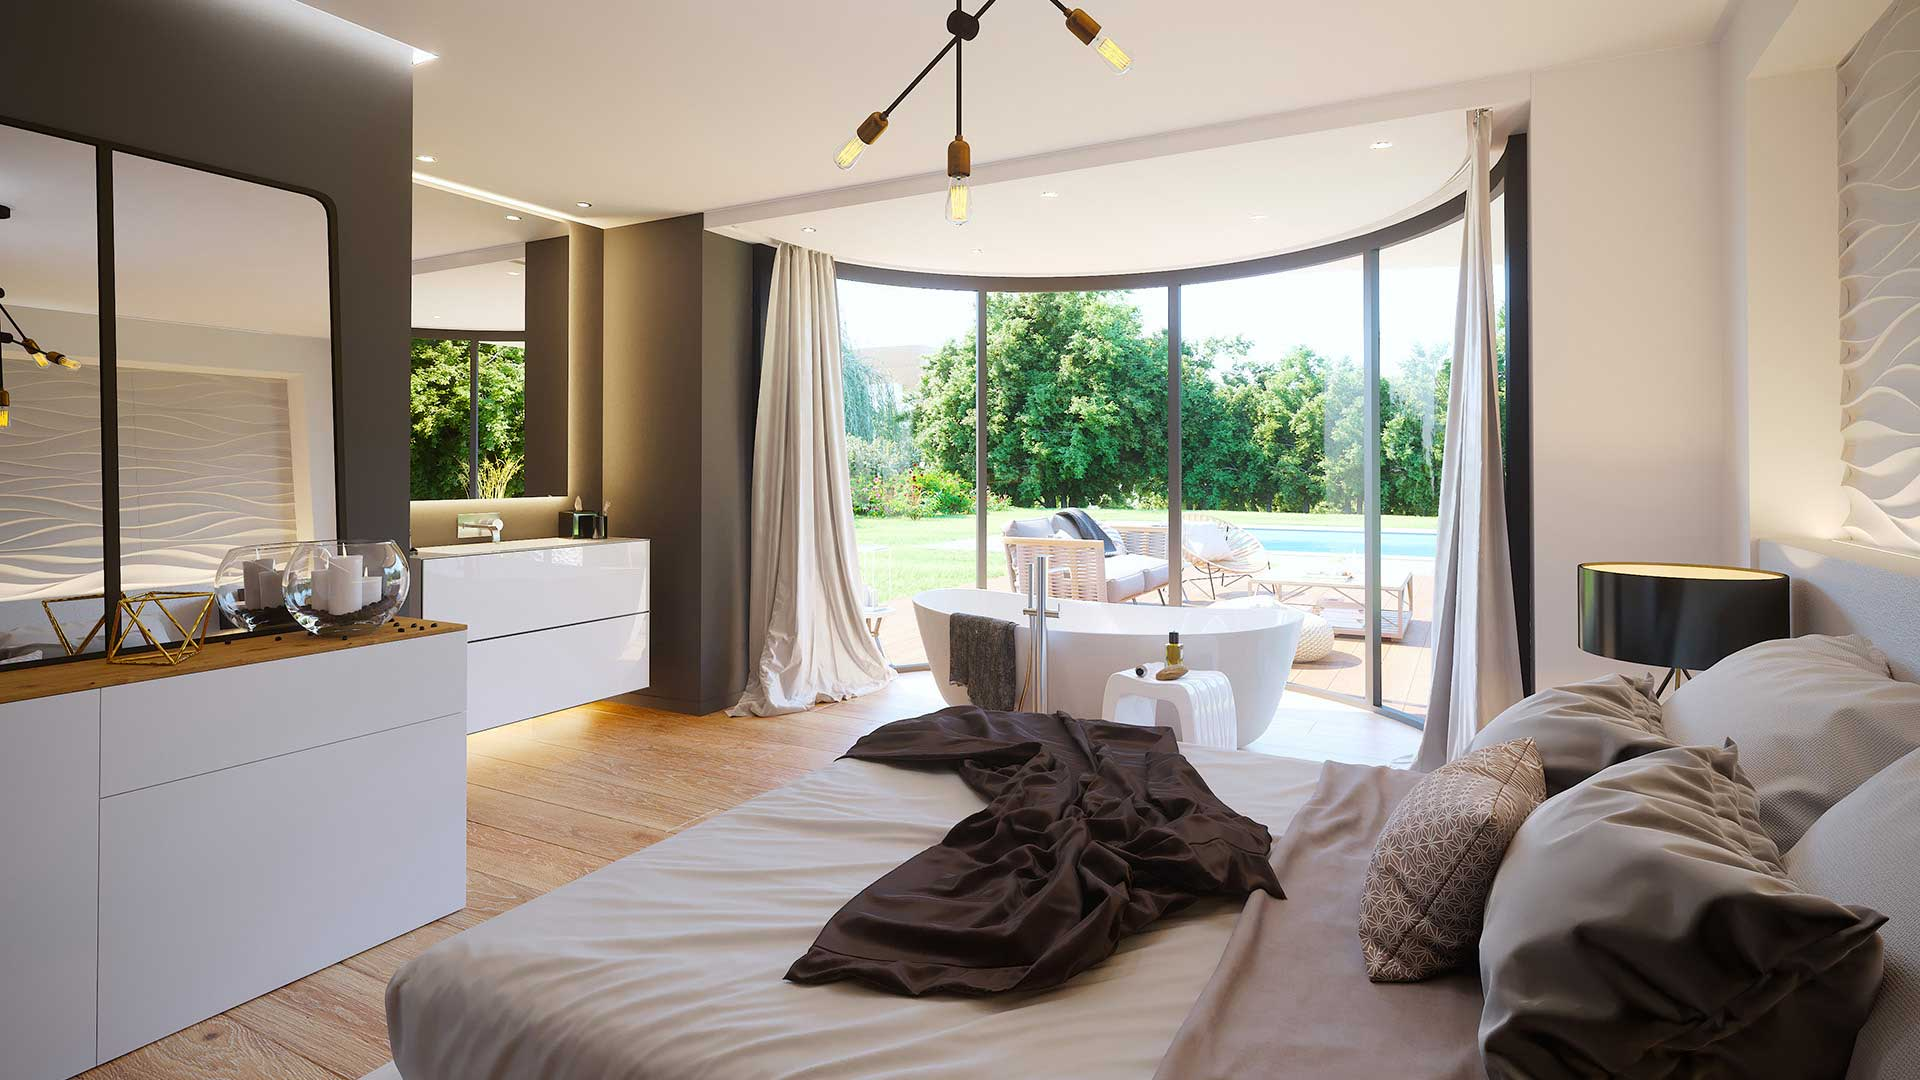 3D Real estate project promotion : room of a luxurious villa in Switzerland.